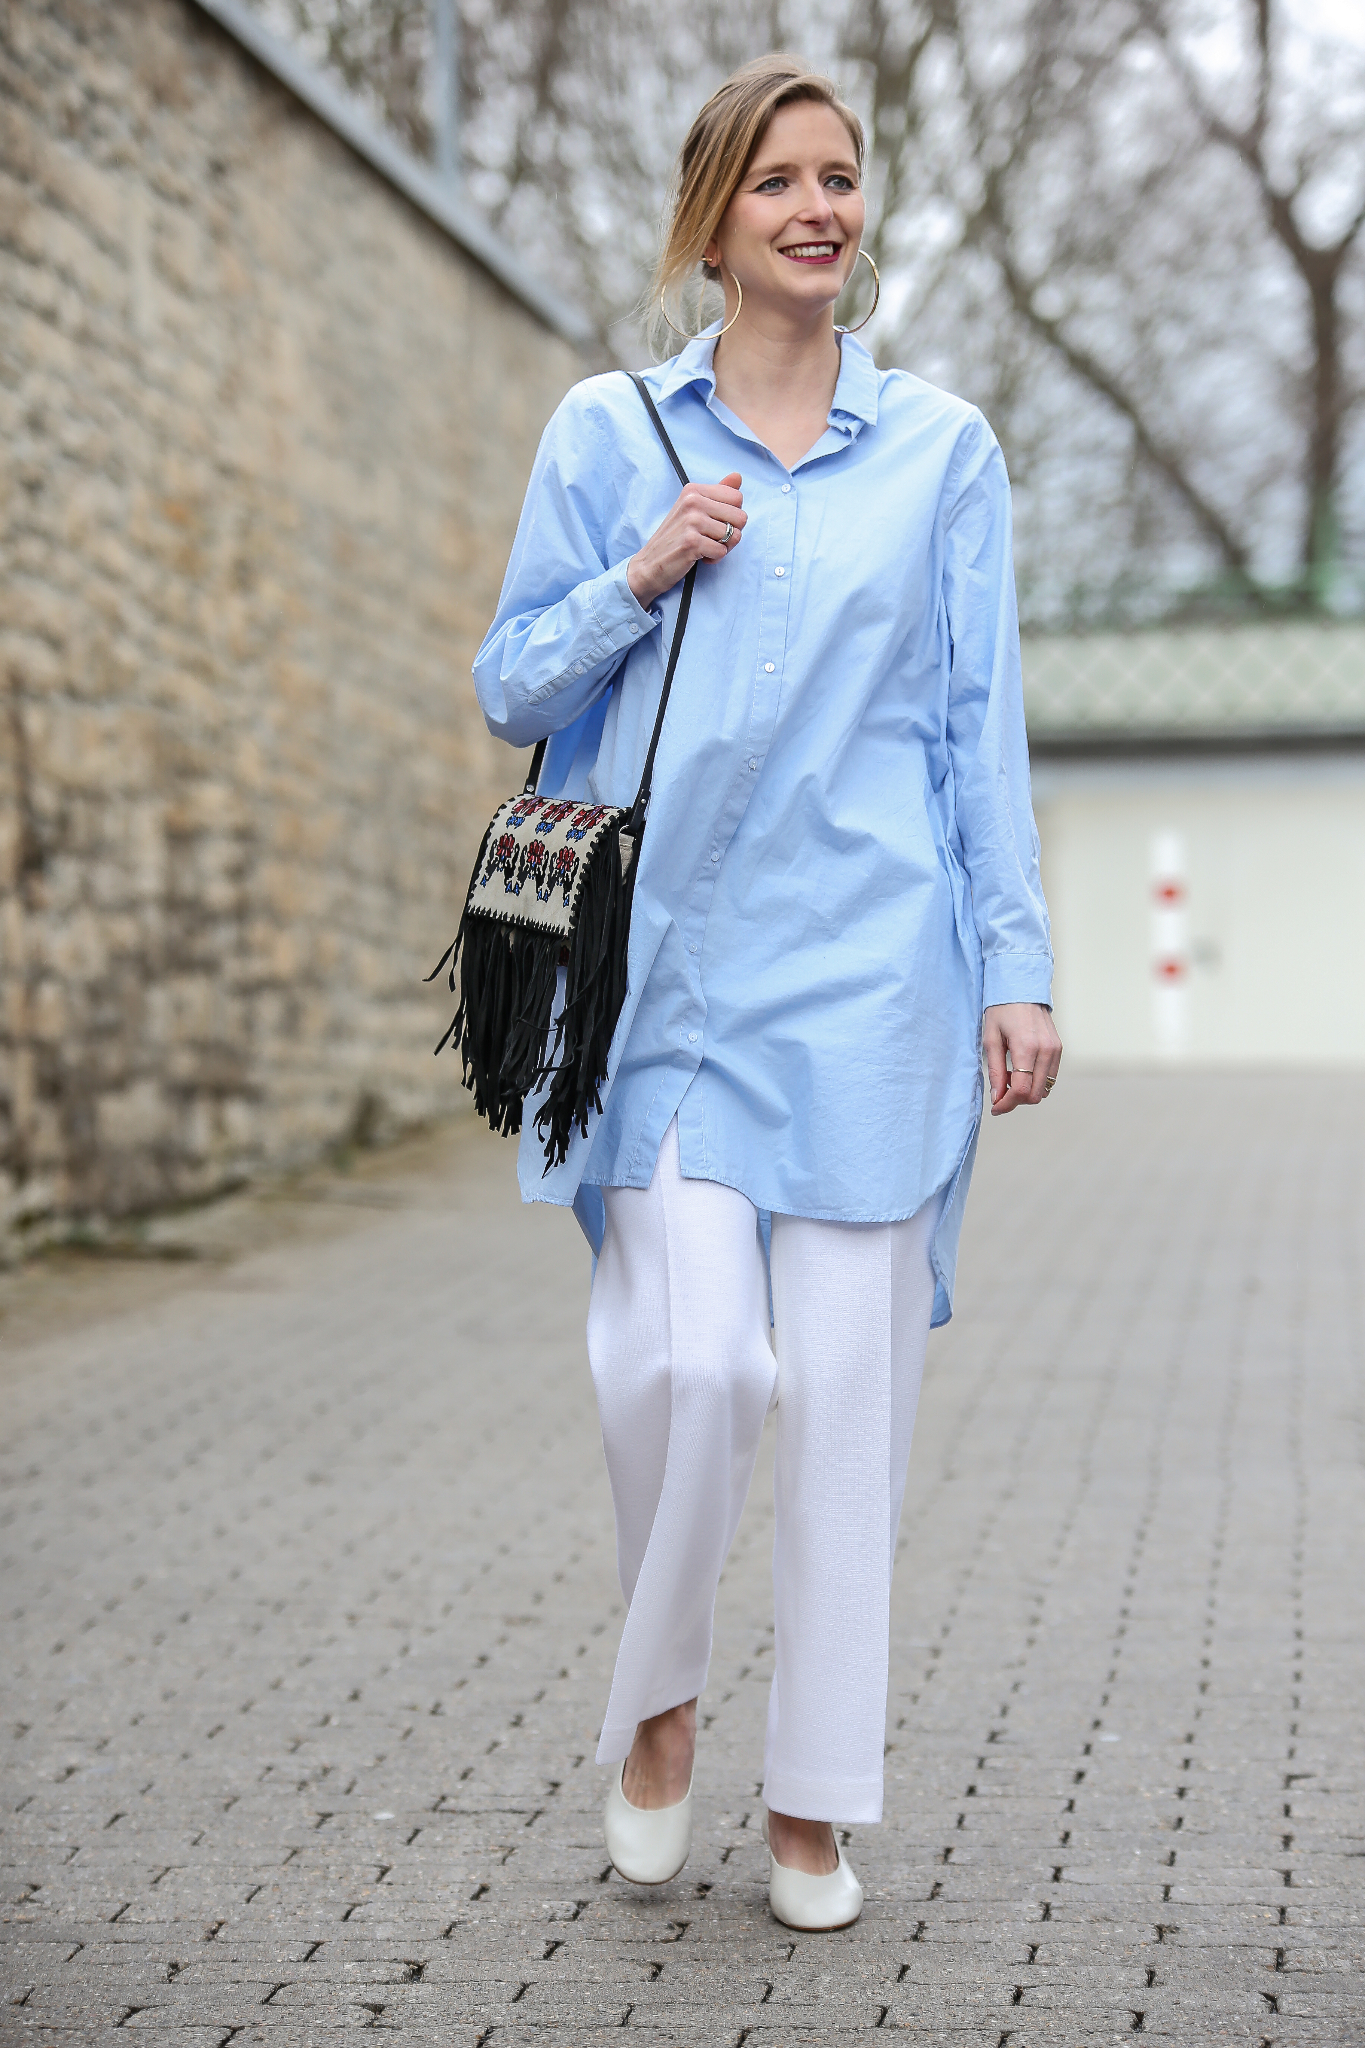 Fashion_Outfit_Popeline_meets_Isabel_Marant-17